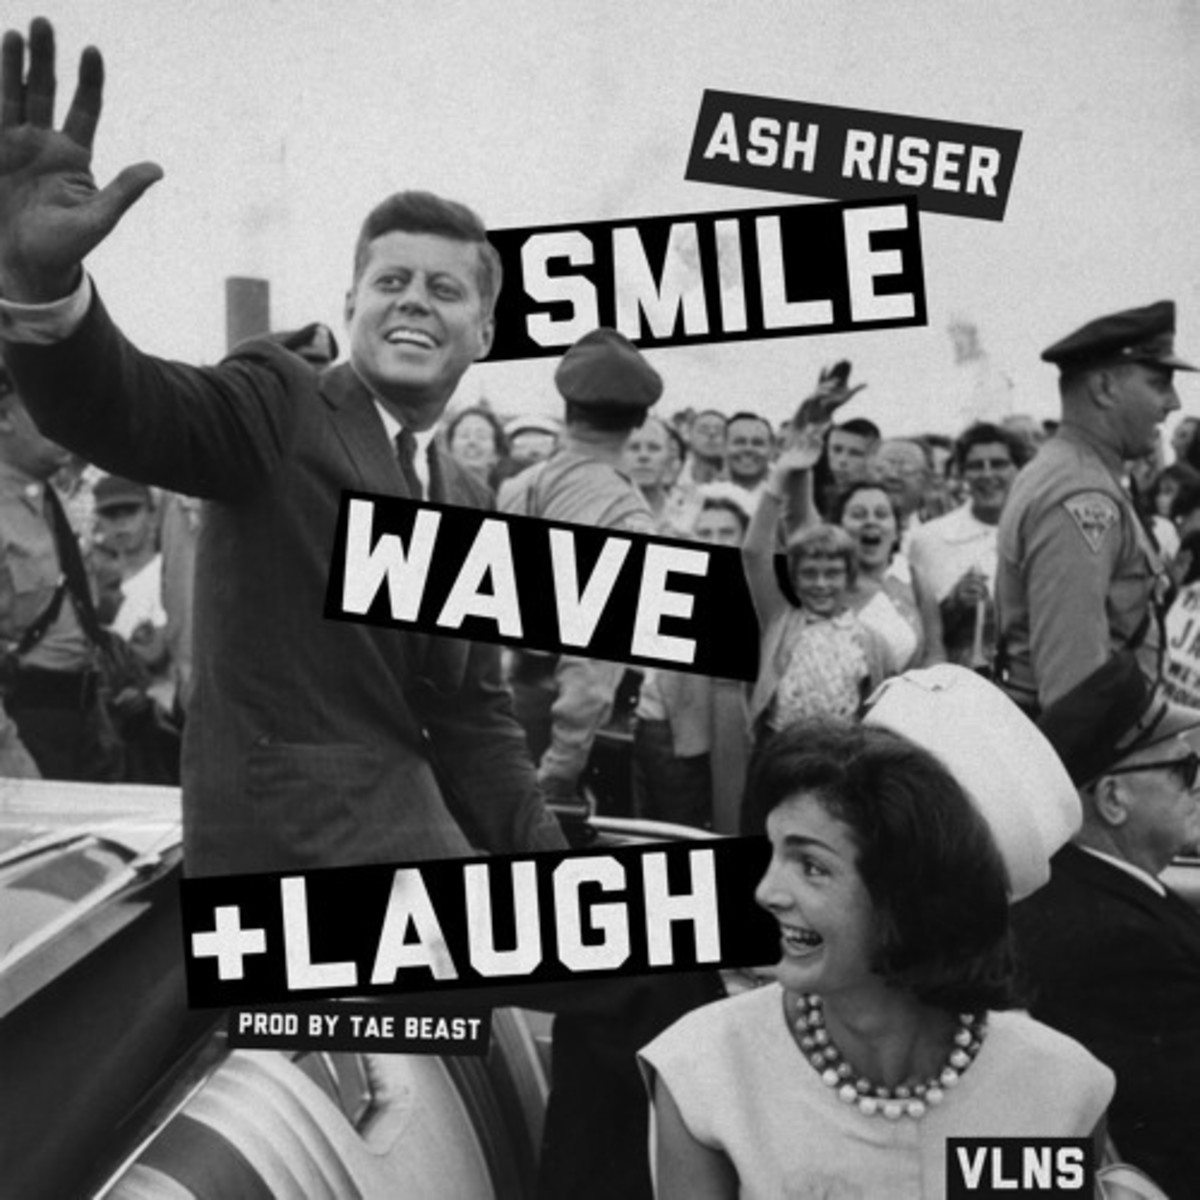 ash-riser-smile-wave-laugh.jpg